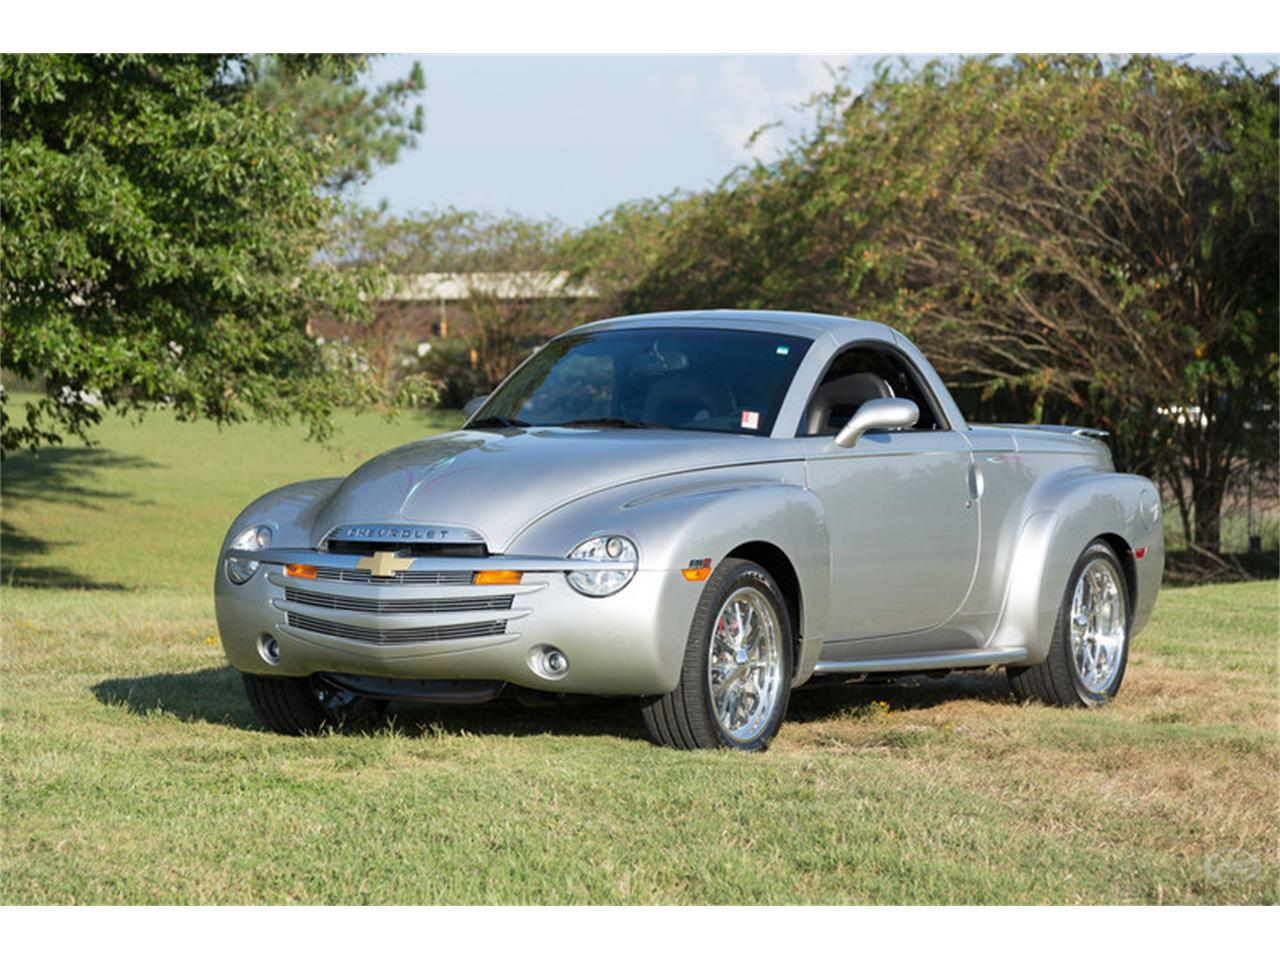 Large Picture of '05 Chevrolet SSR located in Tennessee - $29,900.00 - M6SY